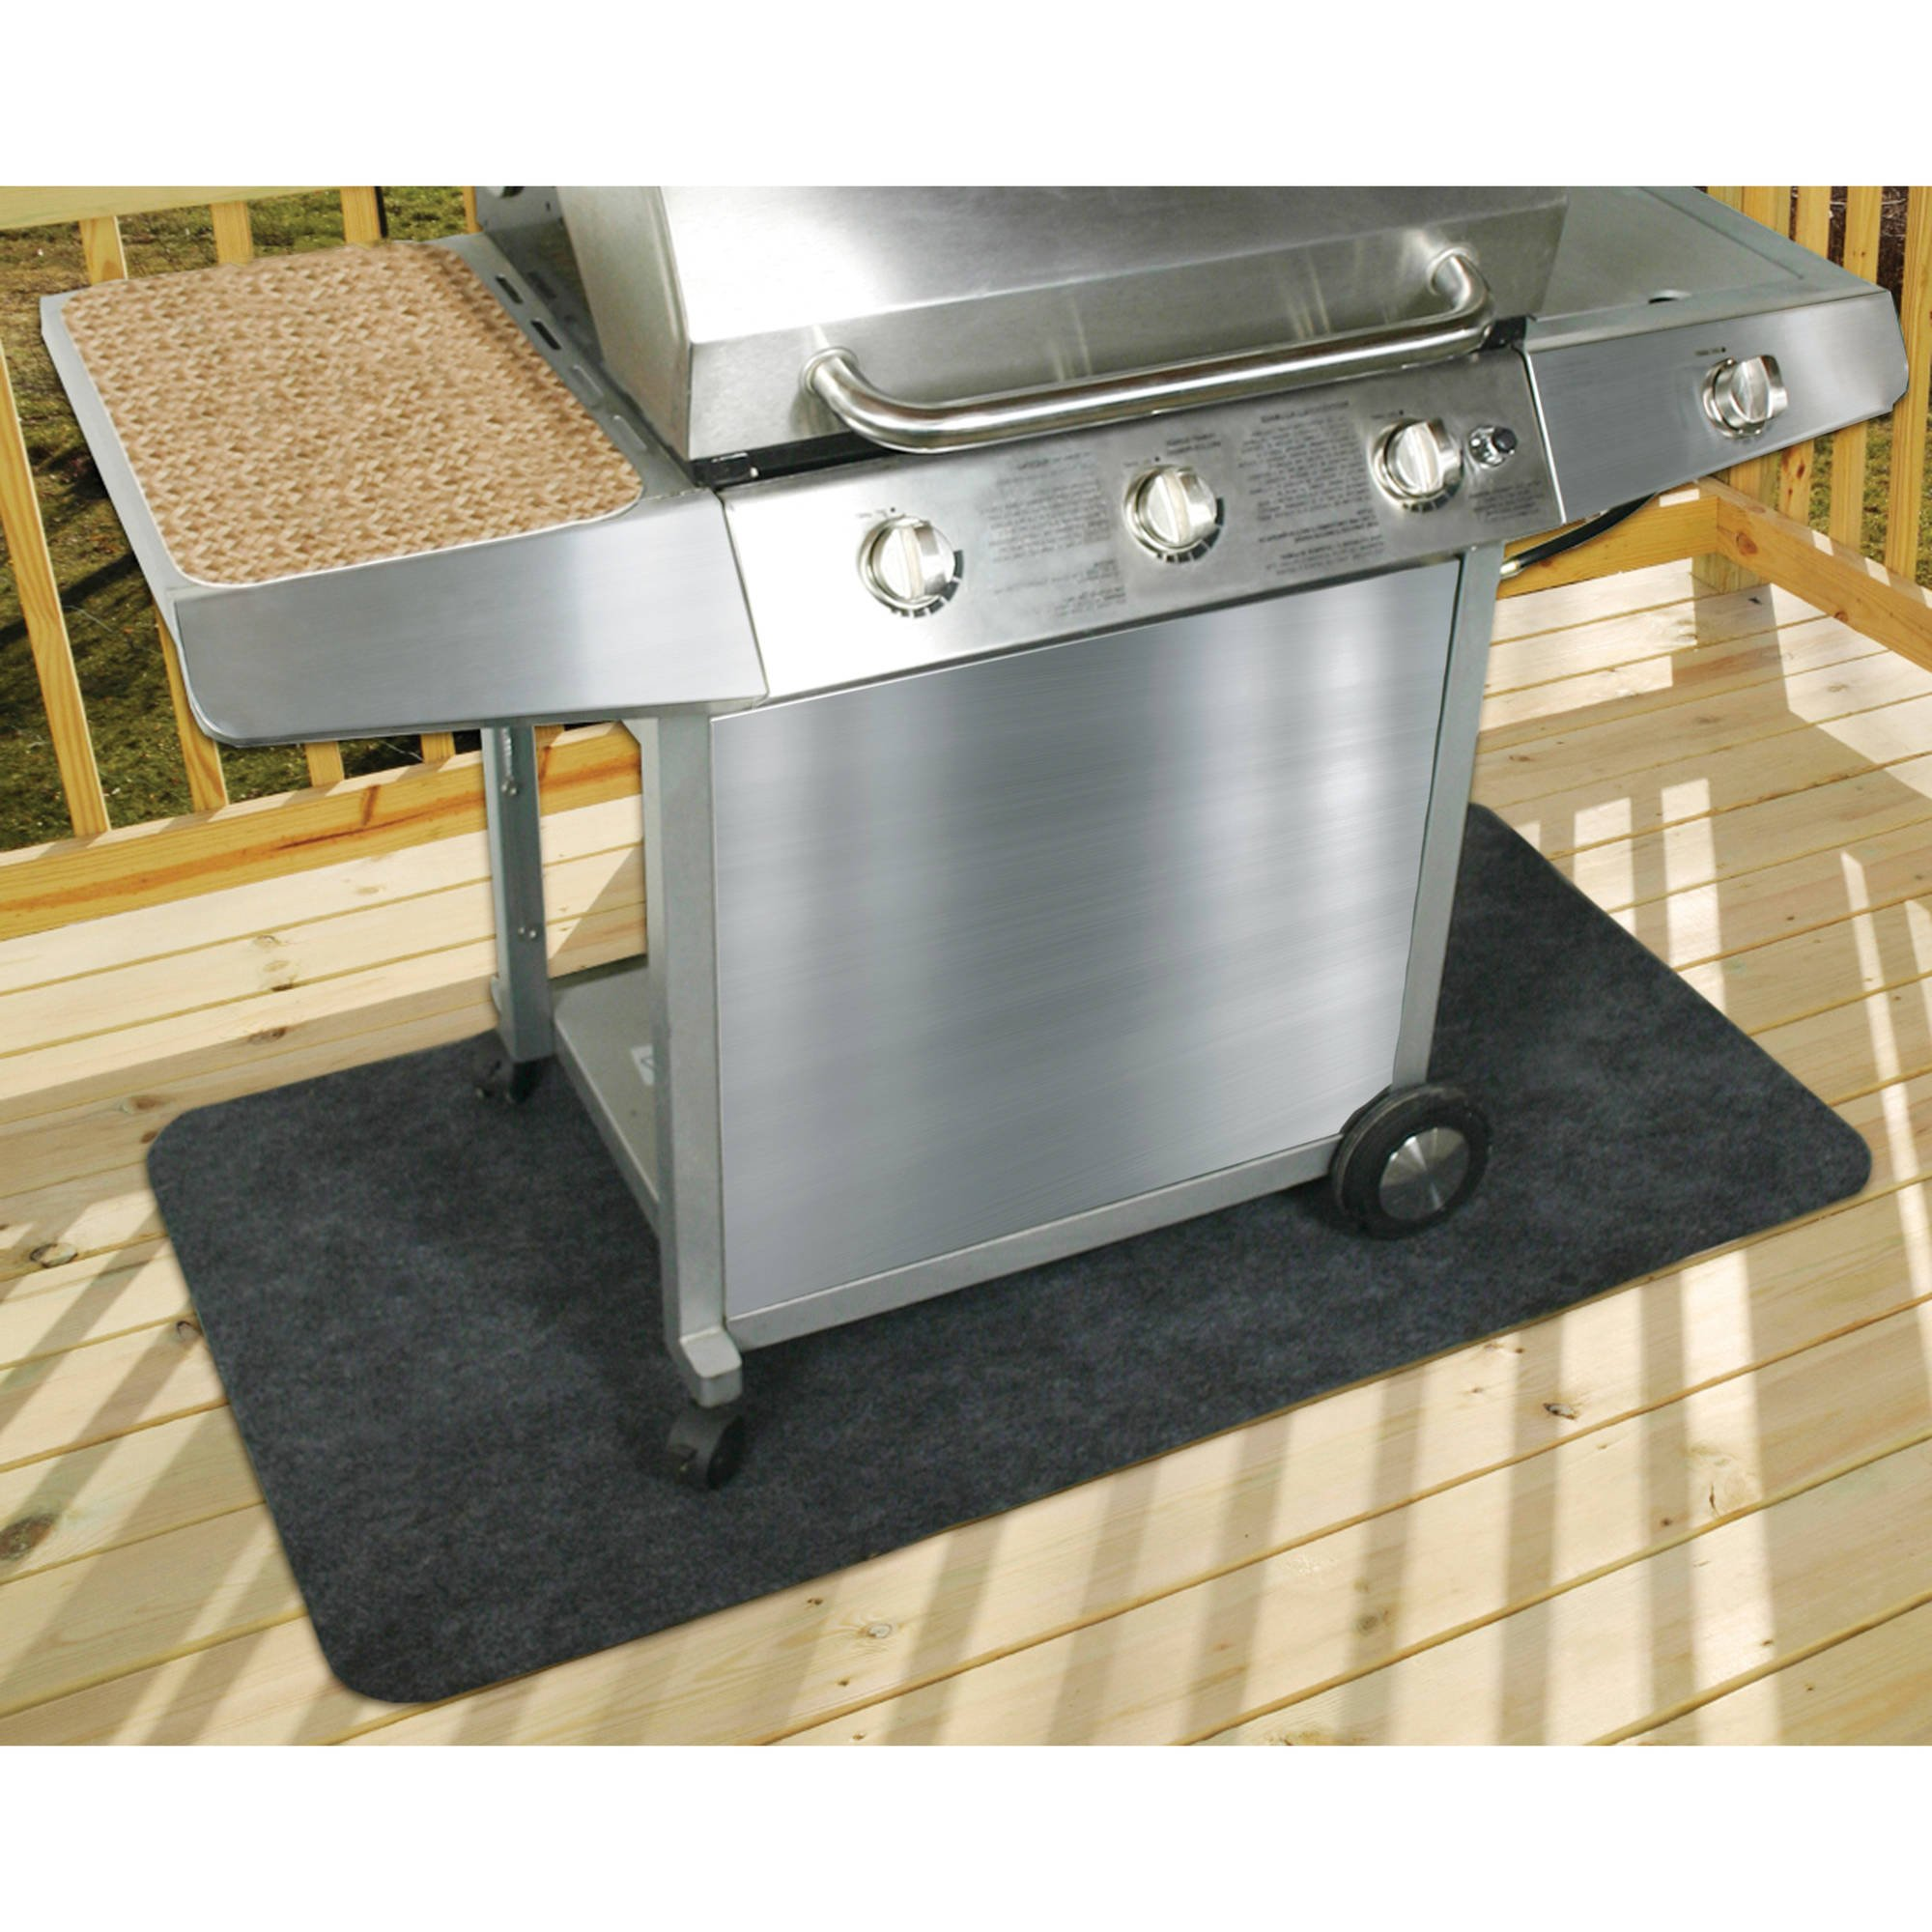 Patio Gas Grill Mat Protects cement, wood and synthetic decking from food and grease stains, prevent damage to decks,PVC-free material and Waterproof by Generic